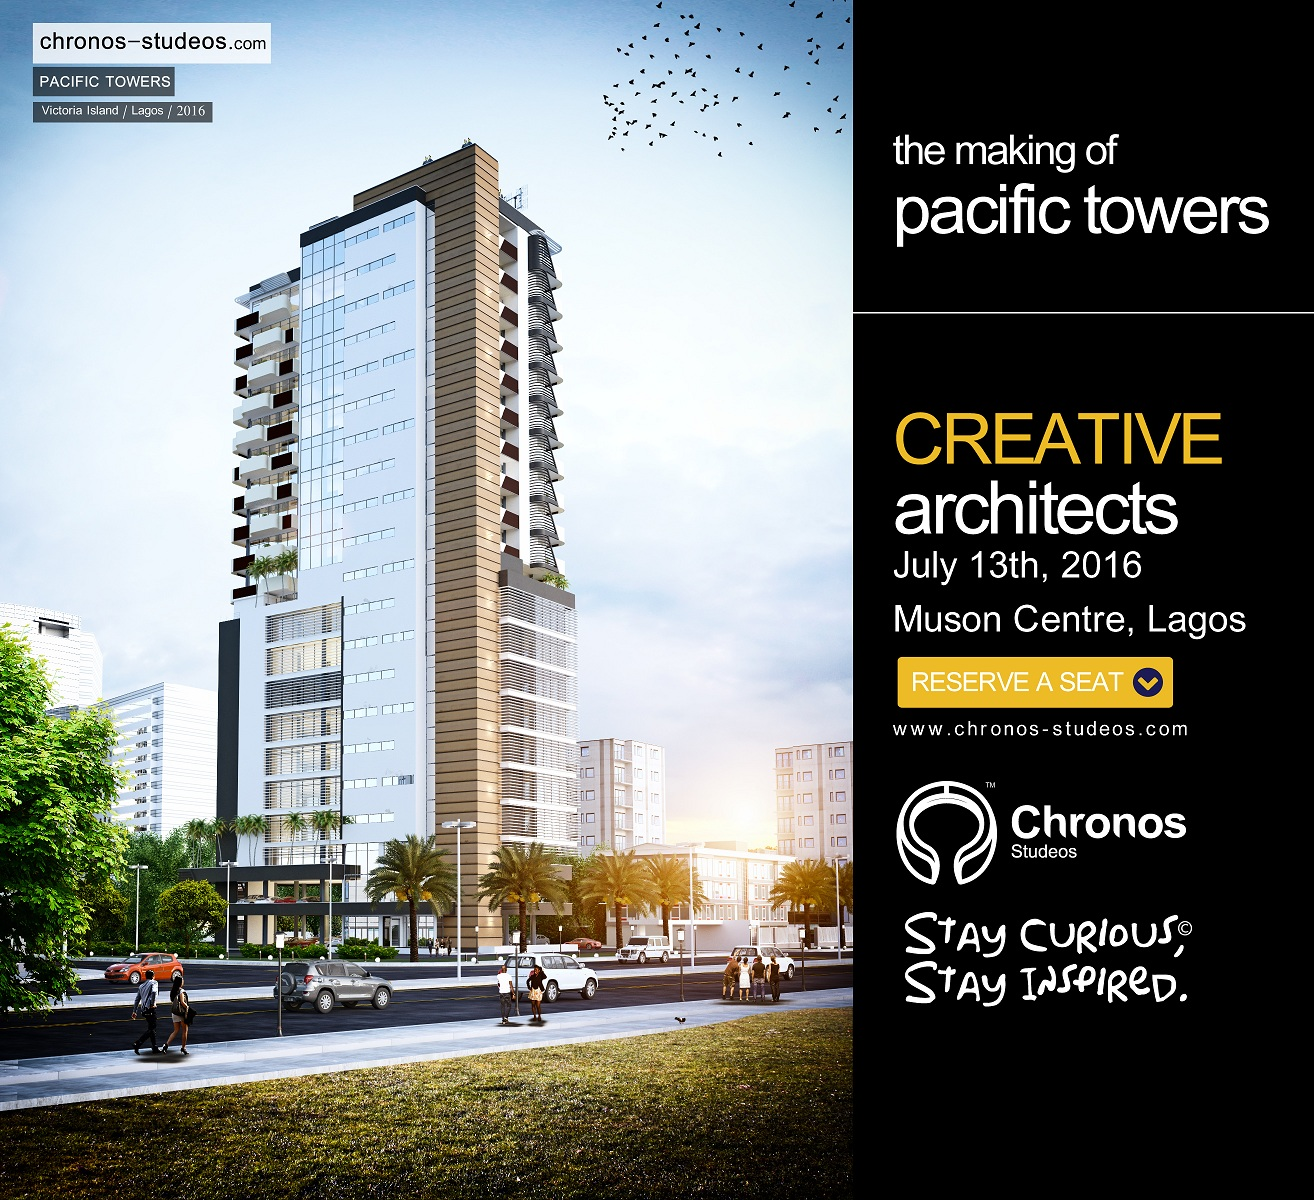 We will also showcase how we made the Victoria Island 'Pacific Towers' 3D visualization